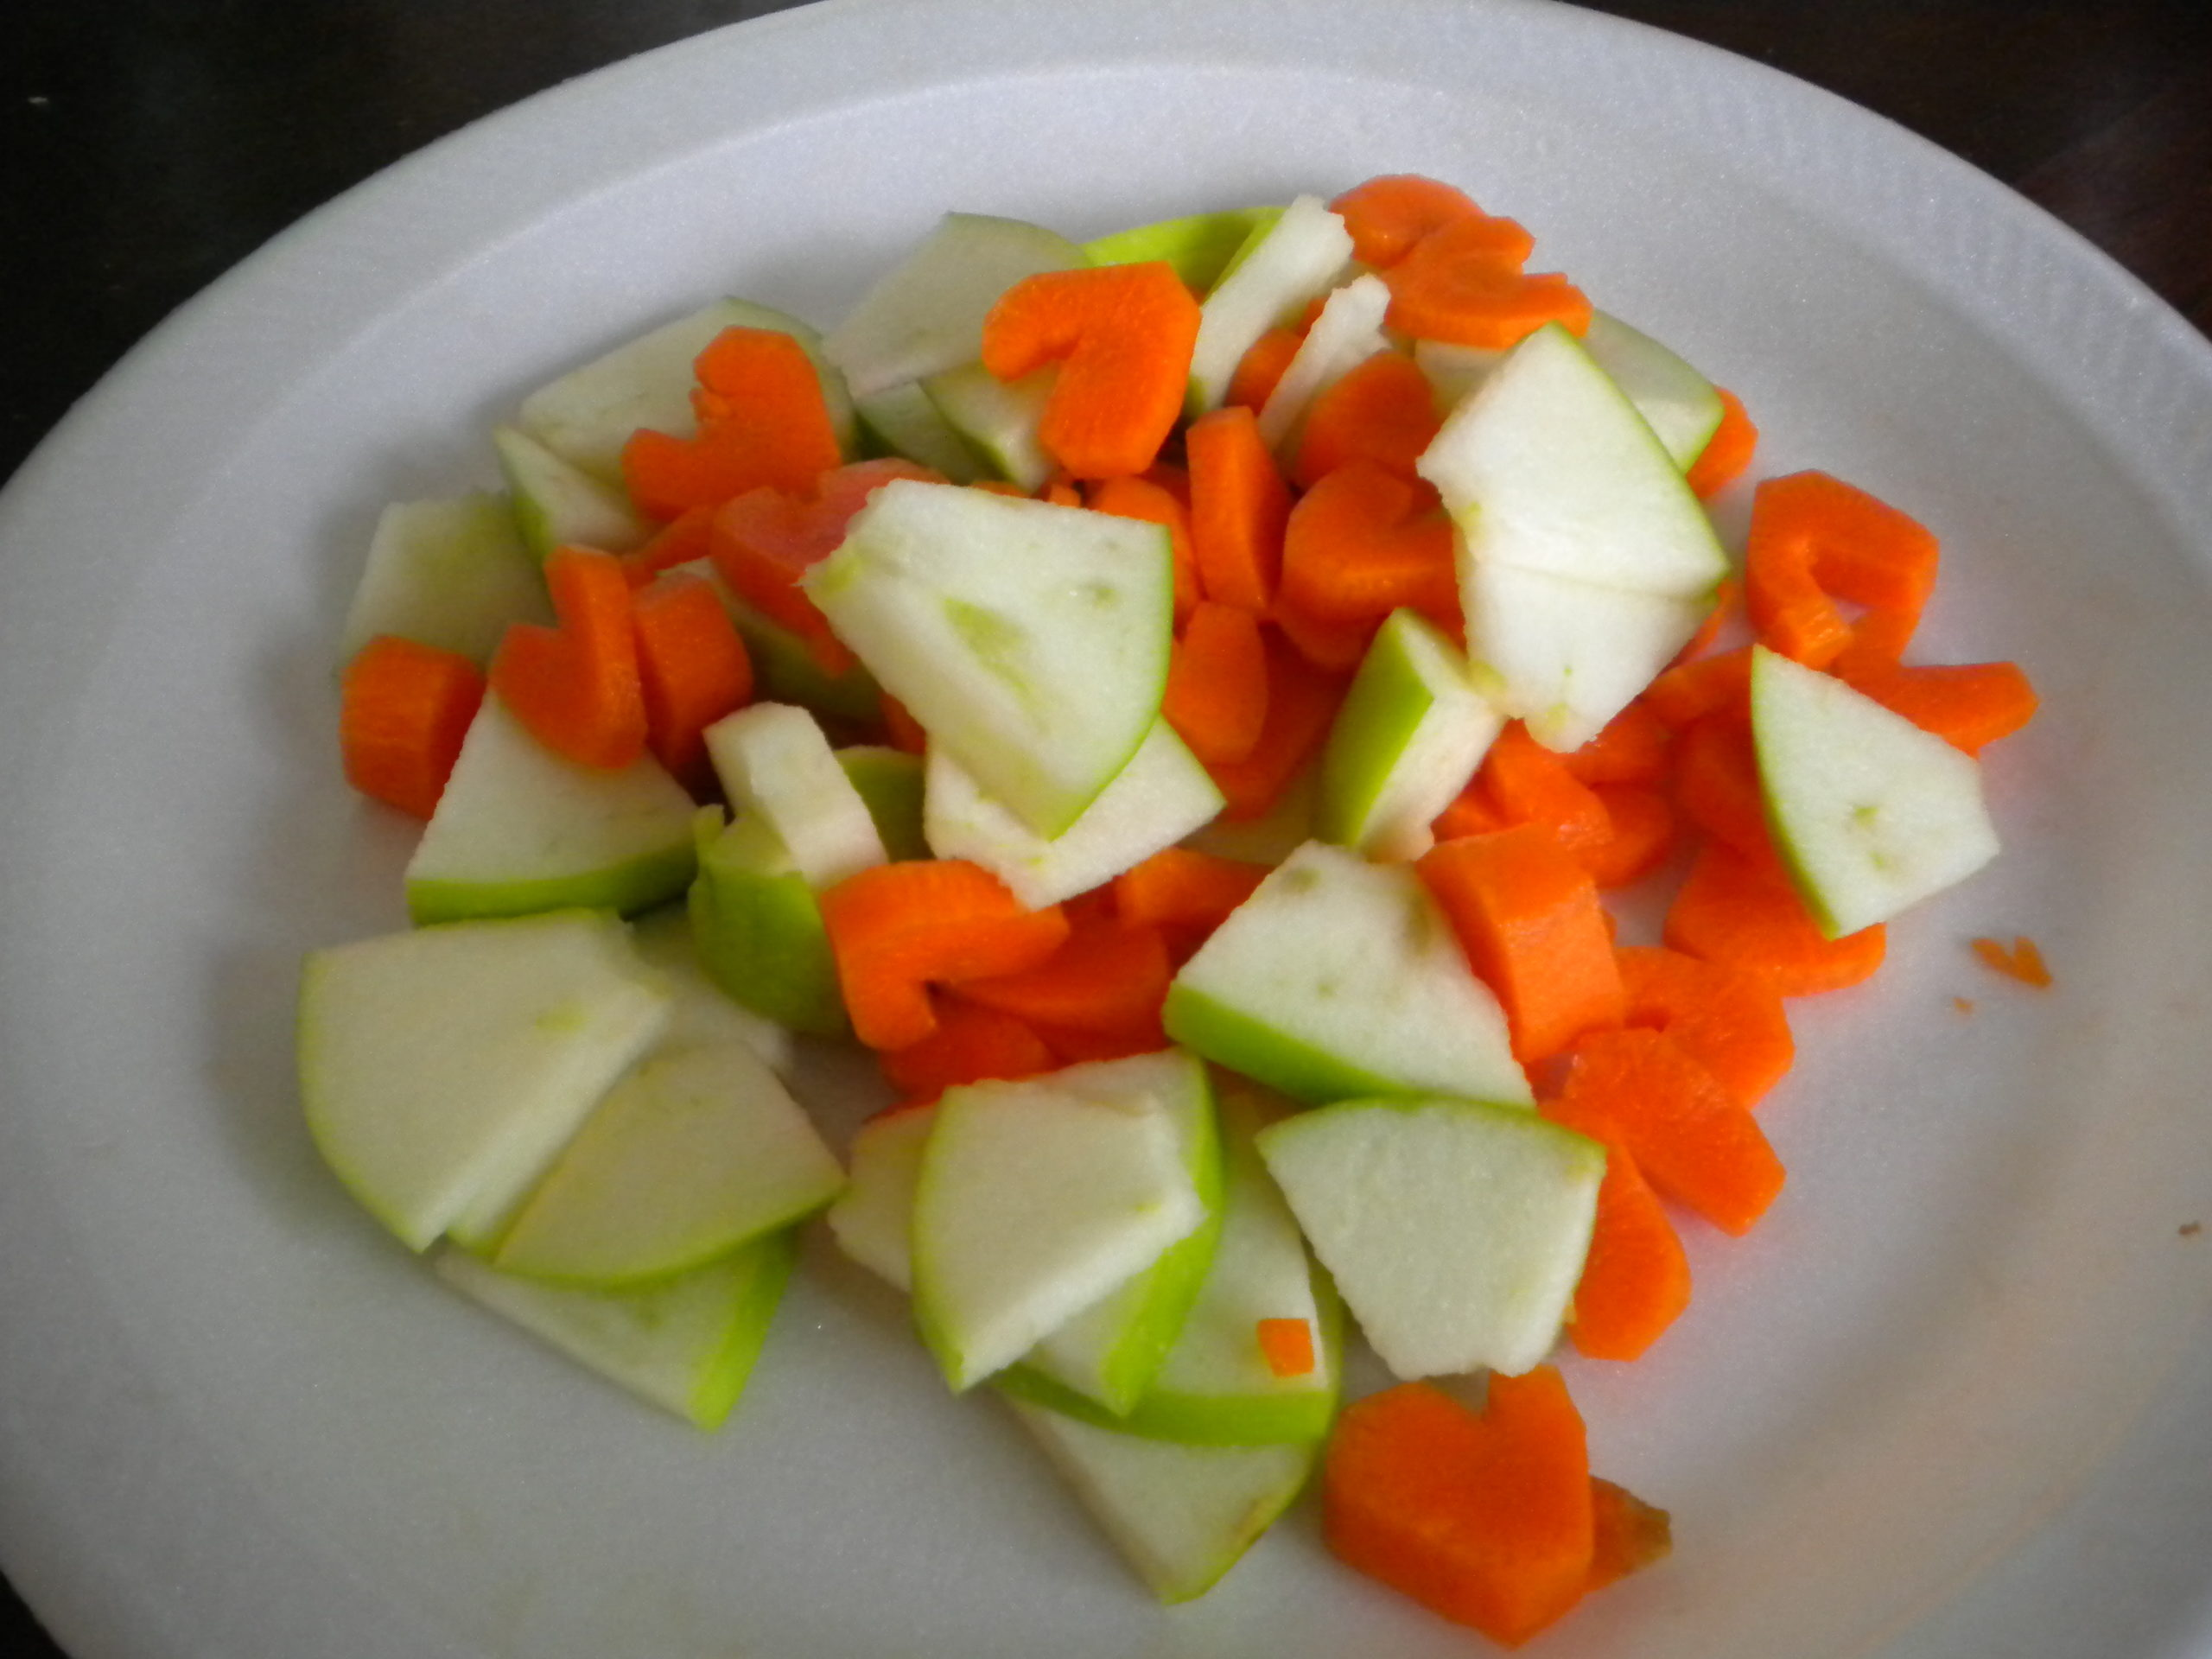 Apple and Carrot Hearts Salad